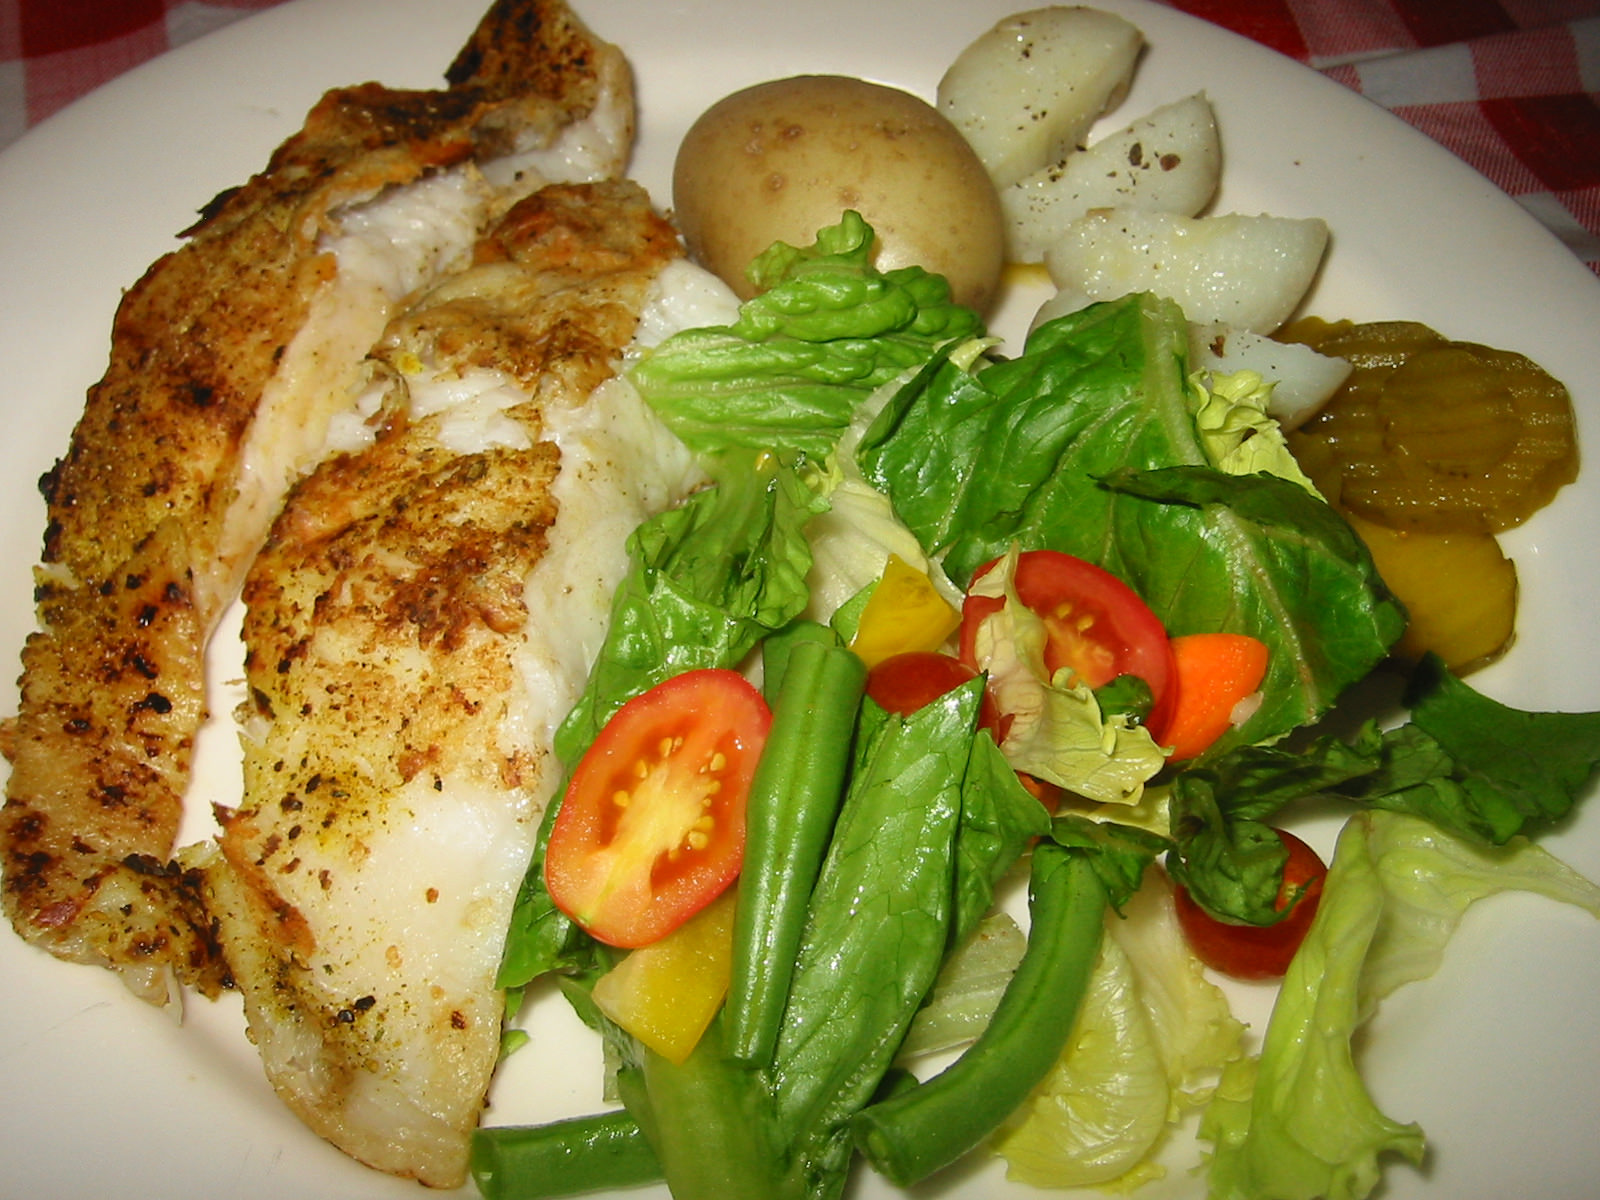 Grilled barramundi, potatoes, salad and pickles